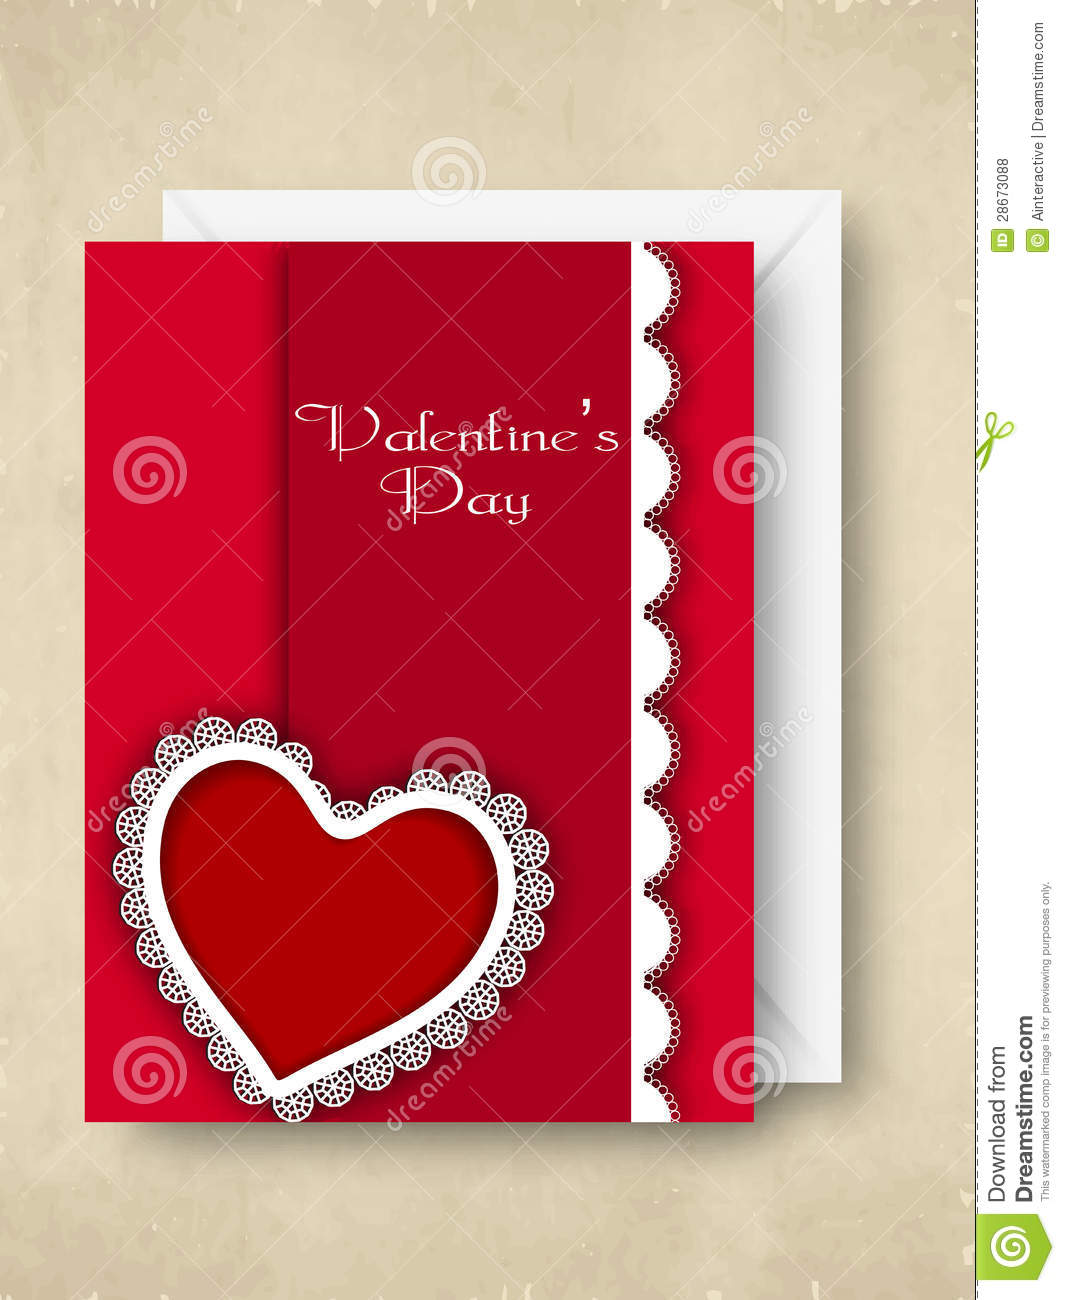 Happy Valentines Day Greeting Card Gift Card Or Background Stock